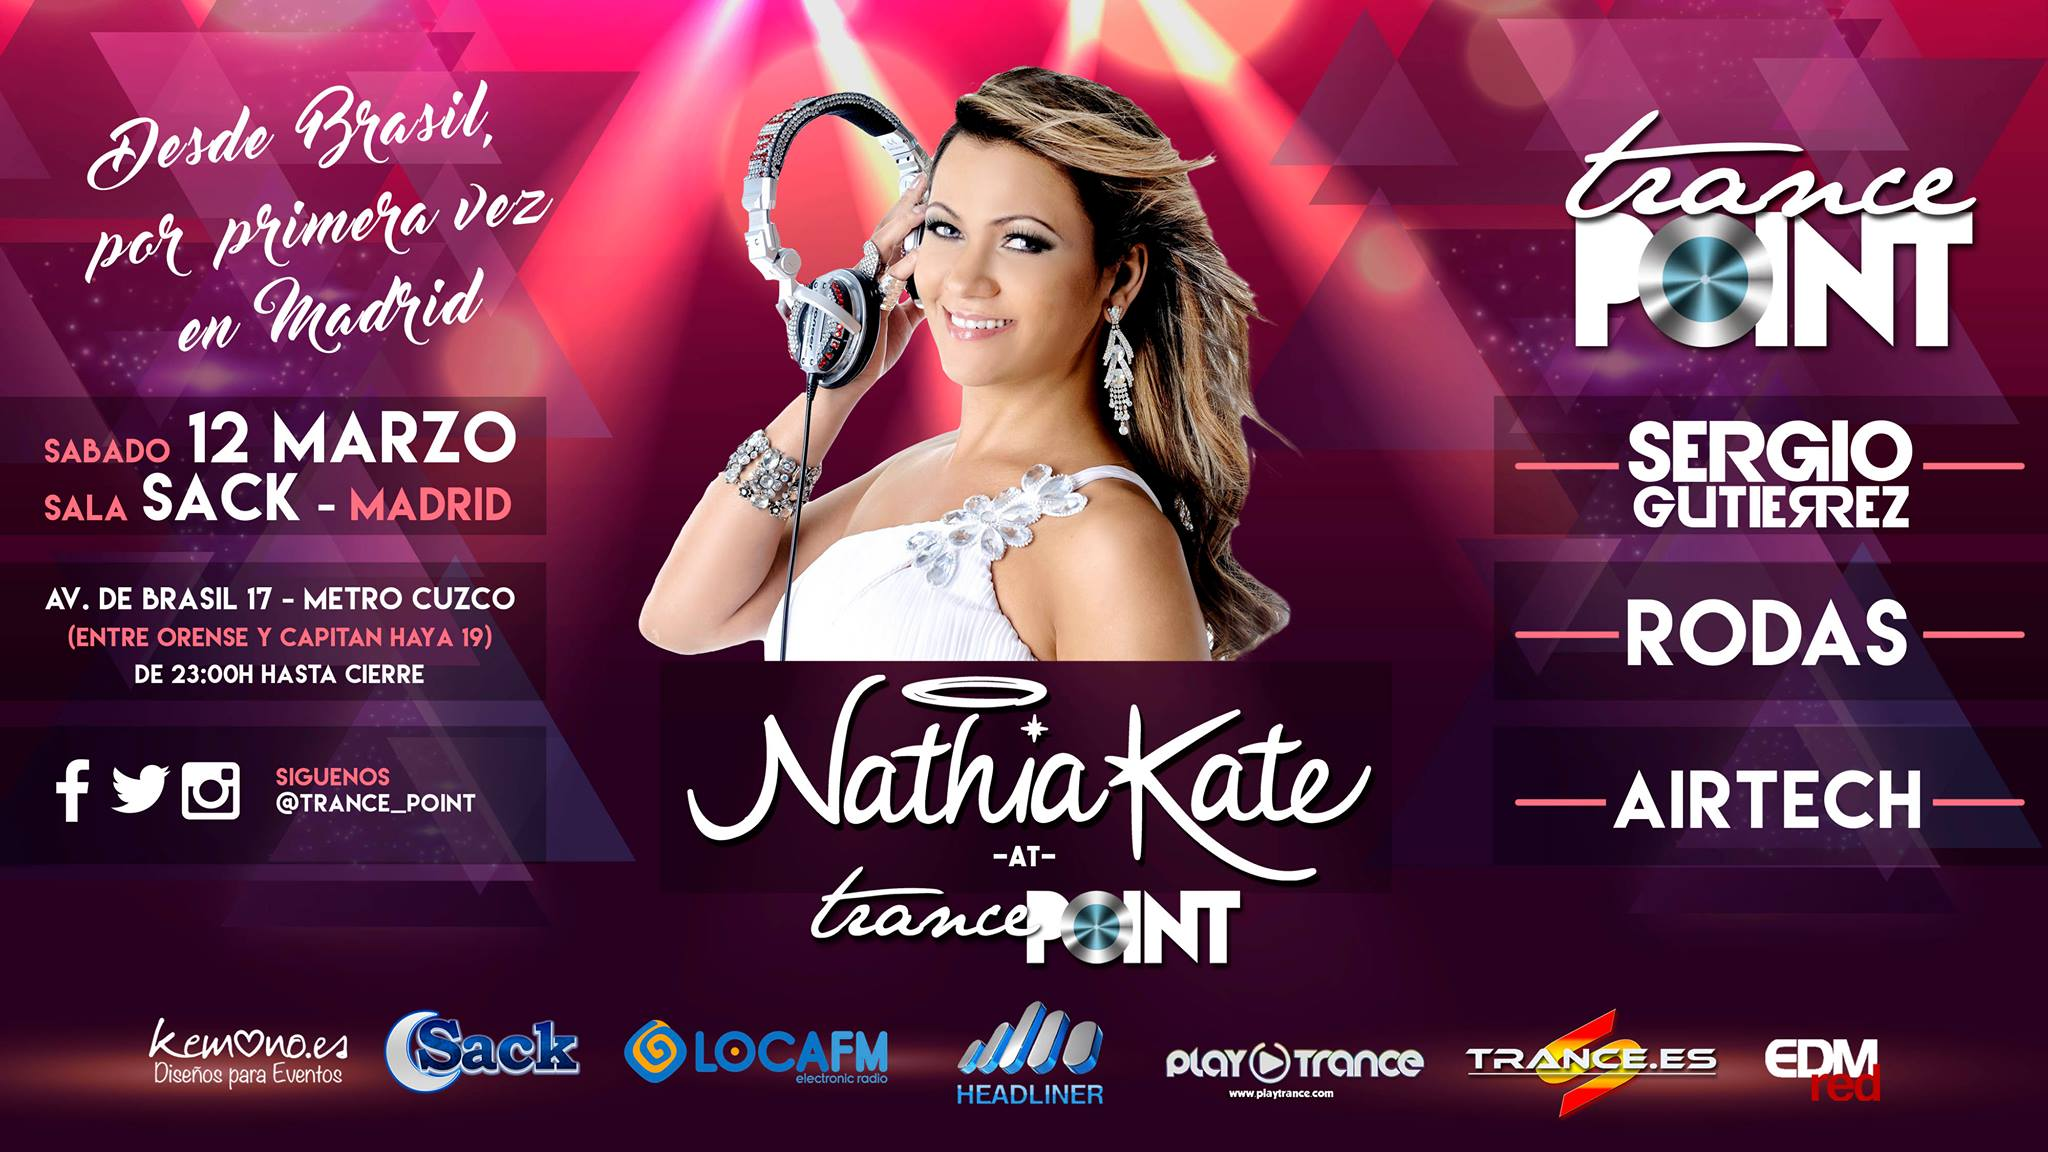 Trance Point trae a Nathia Kate a Madrid